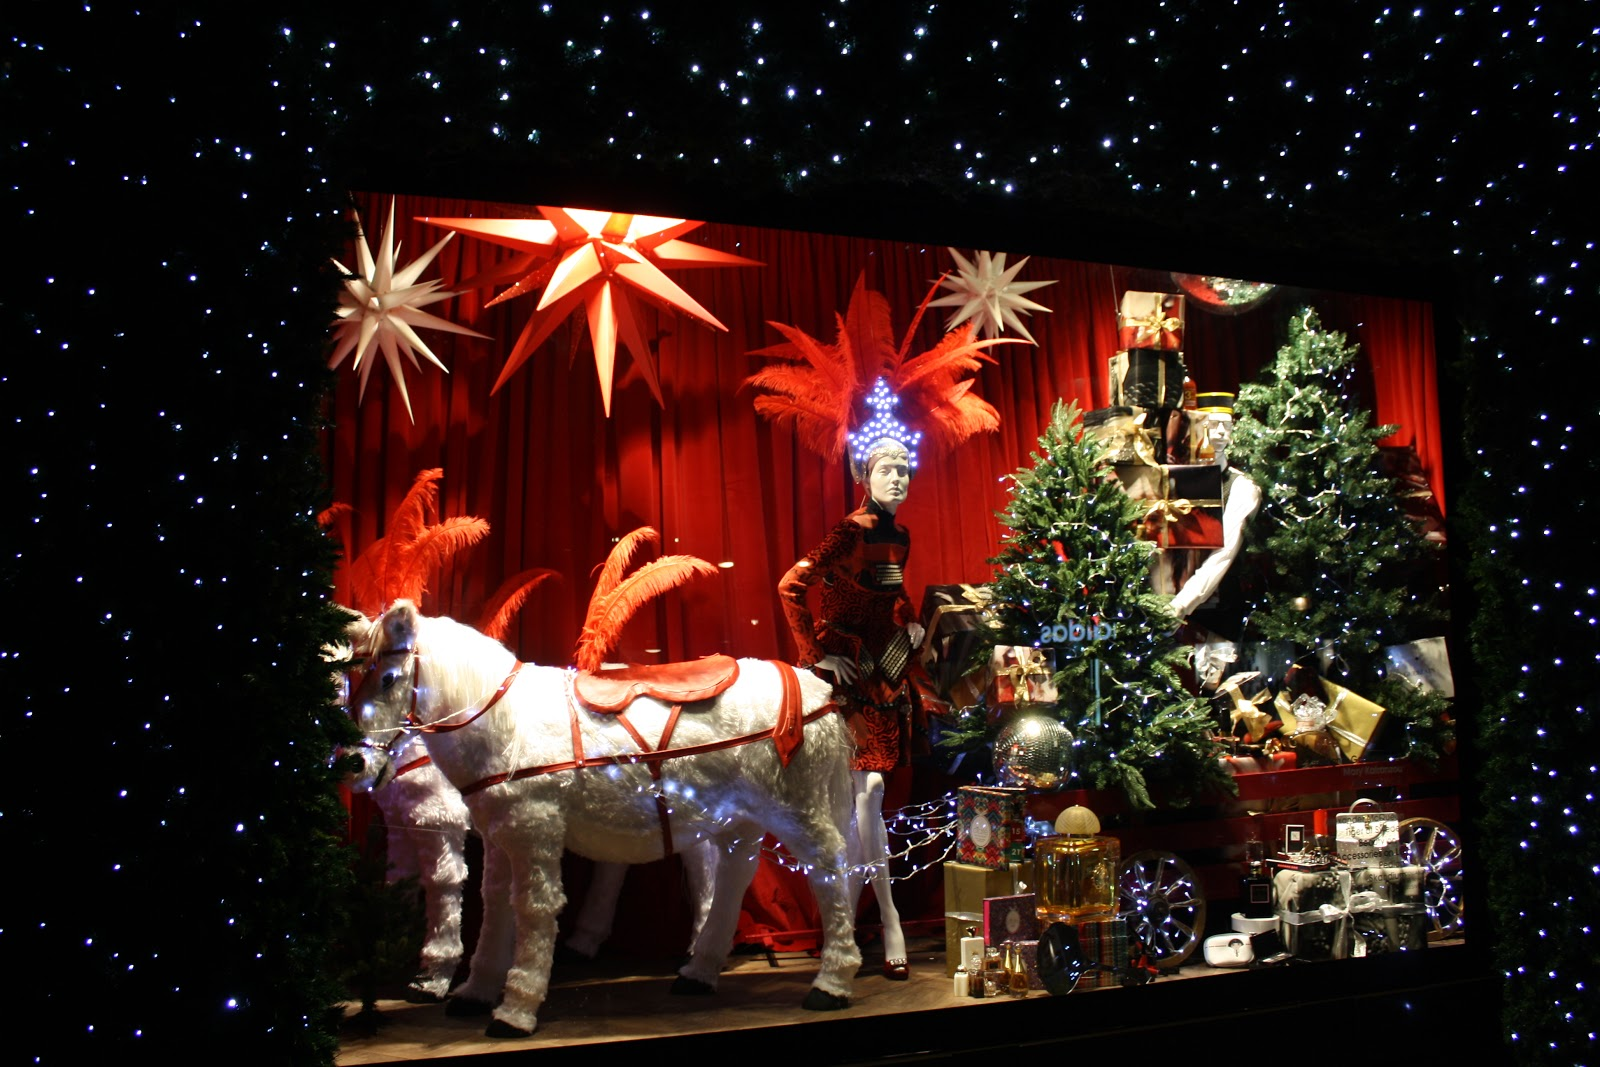 The main theme of this Christmas window display is two little horses with a charged carriage with adorned firs and presents.